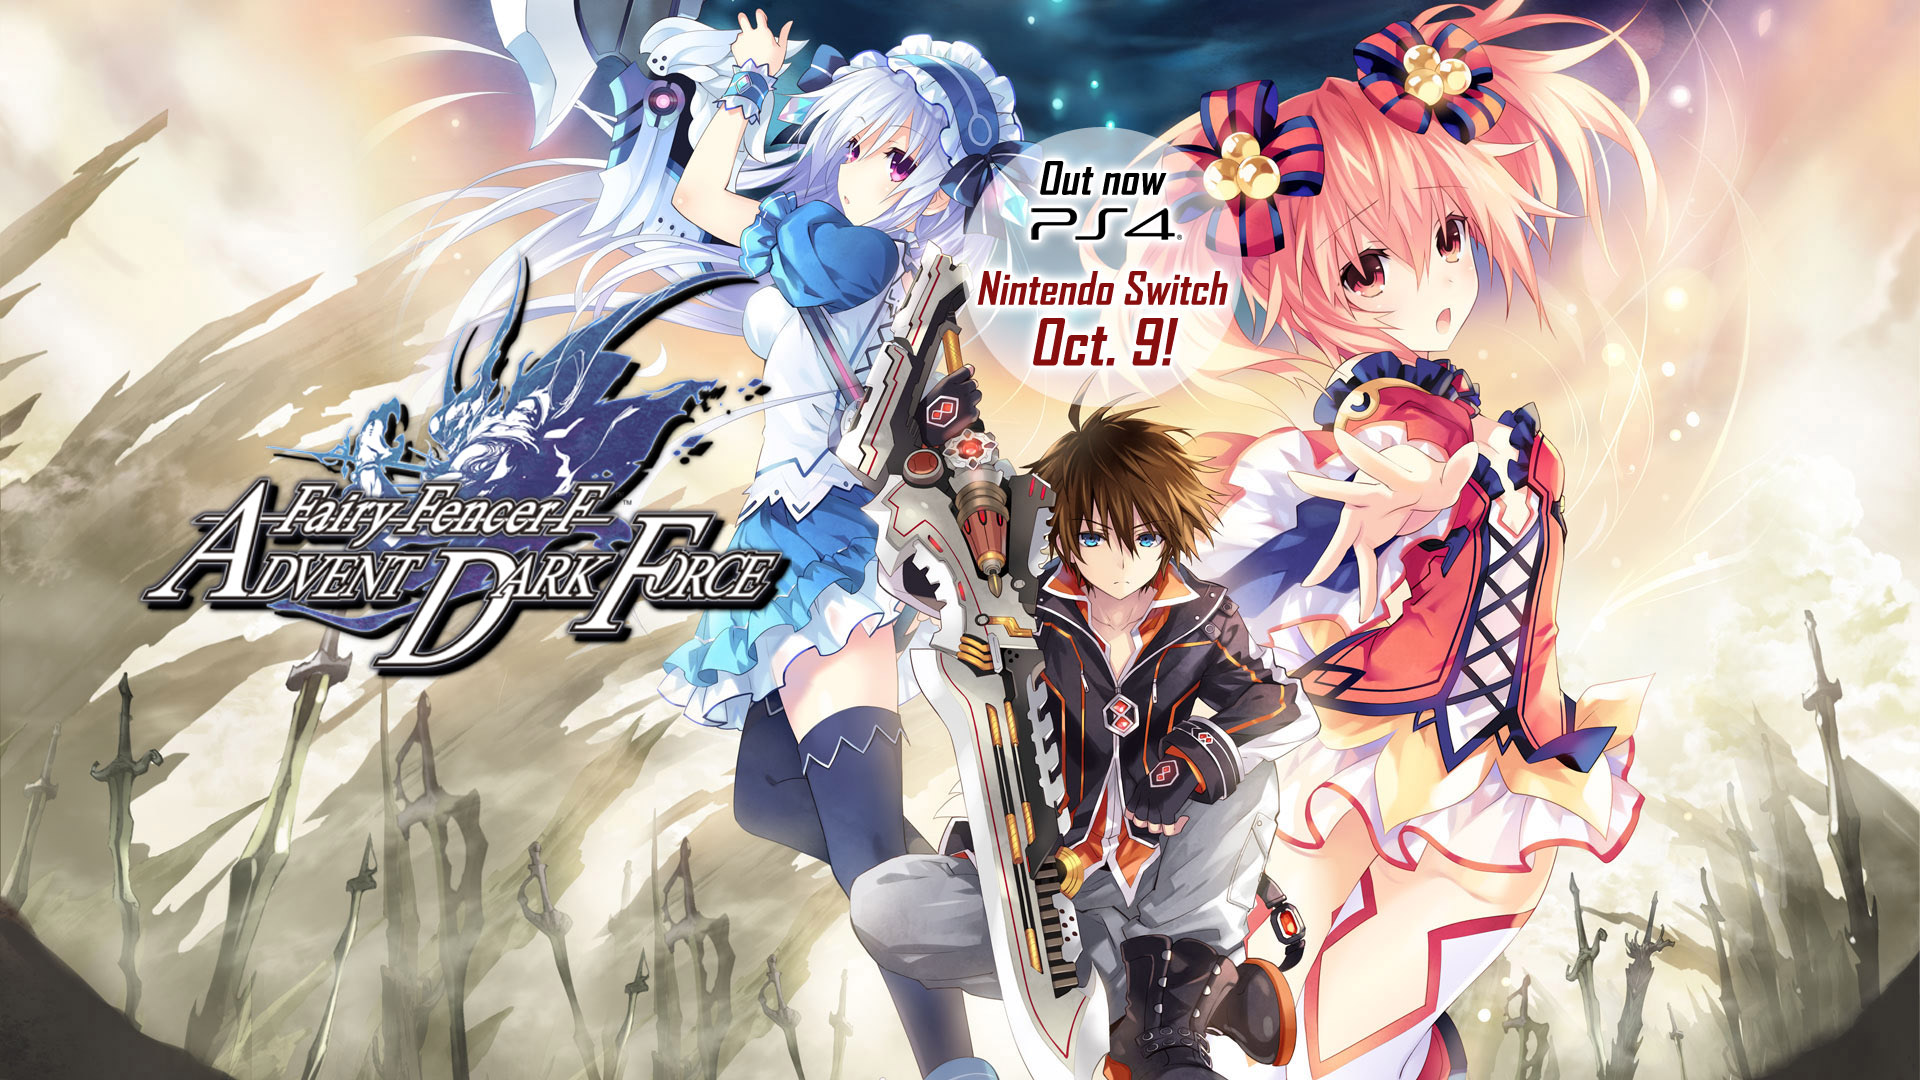 Fairy Fencer F Advent Dark Force Coming To Switch Blog Ppn